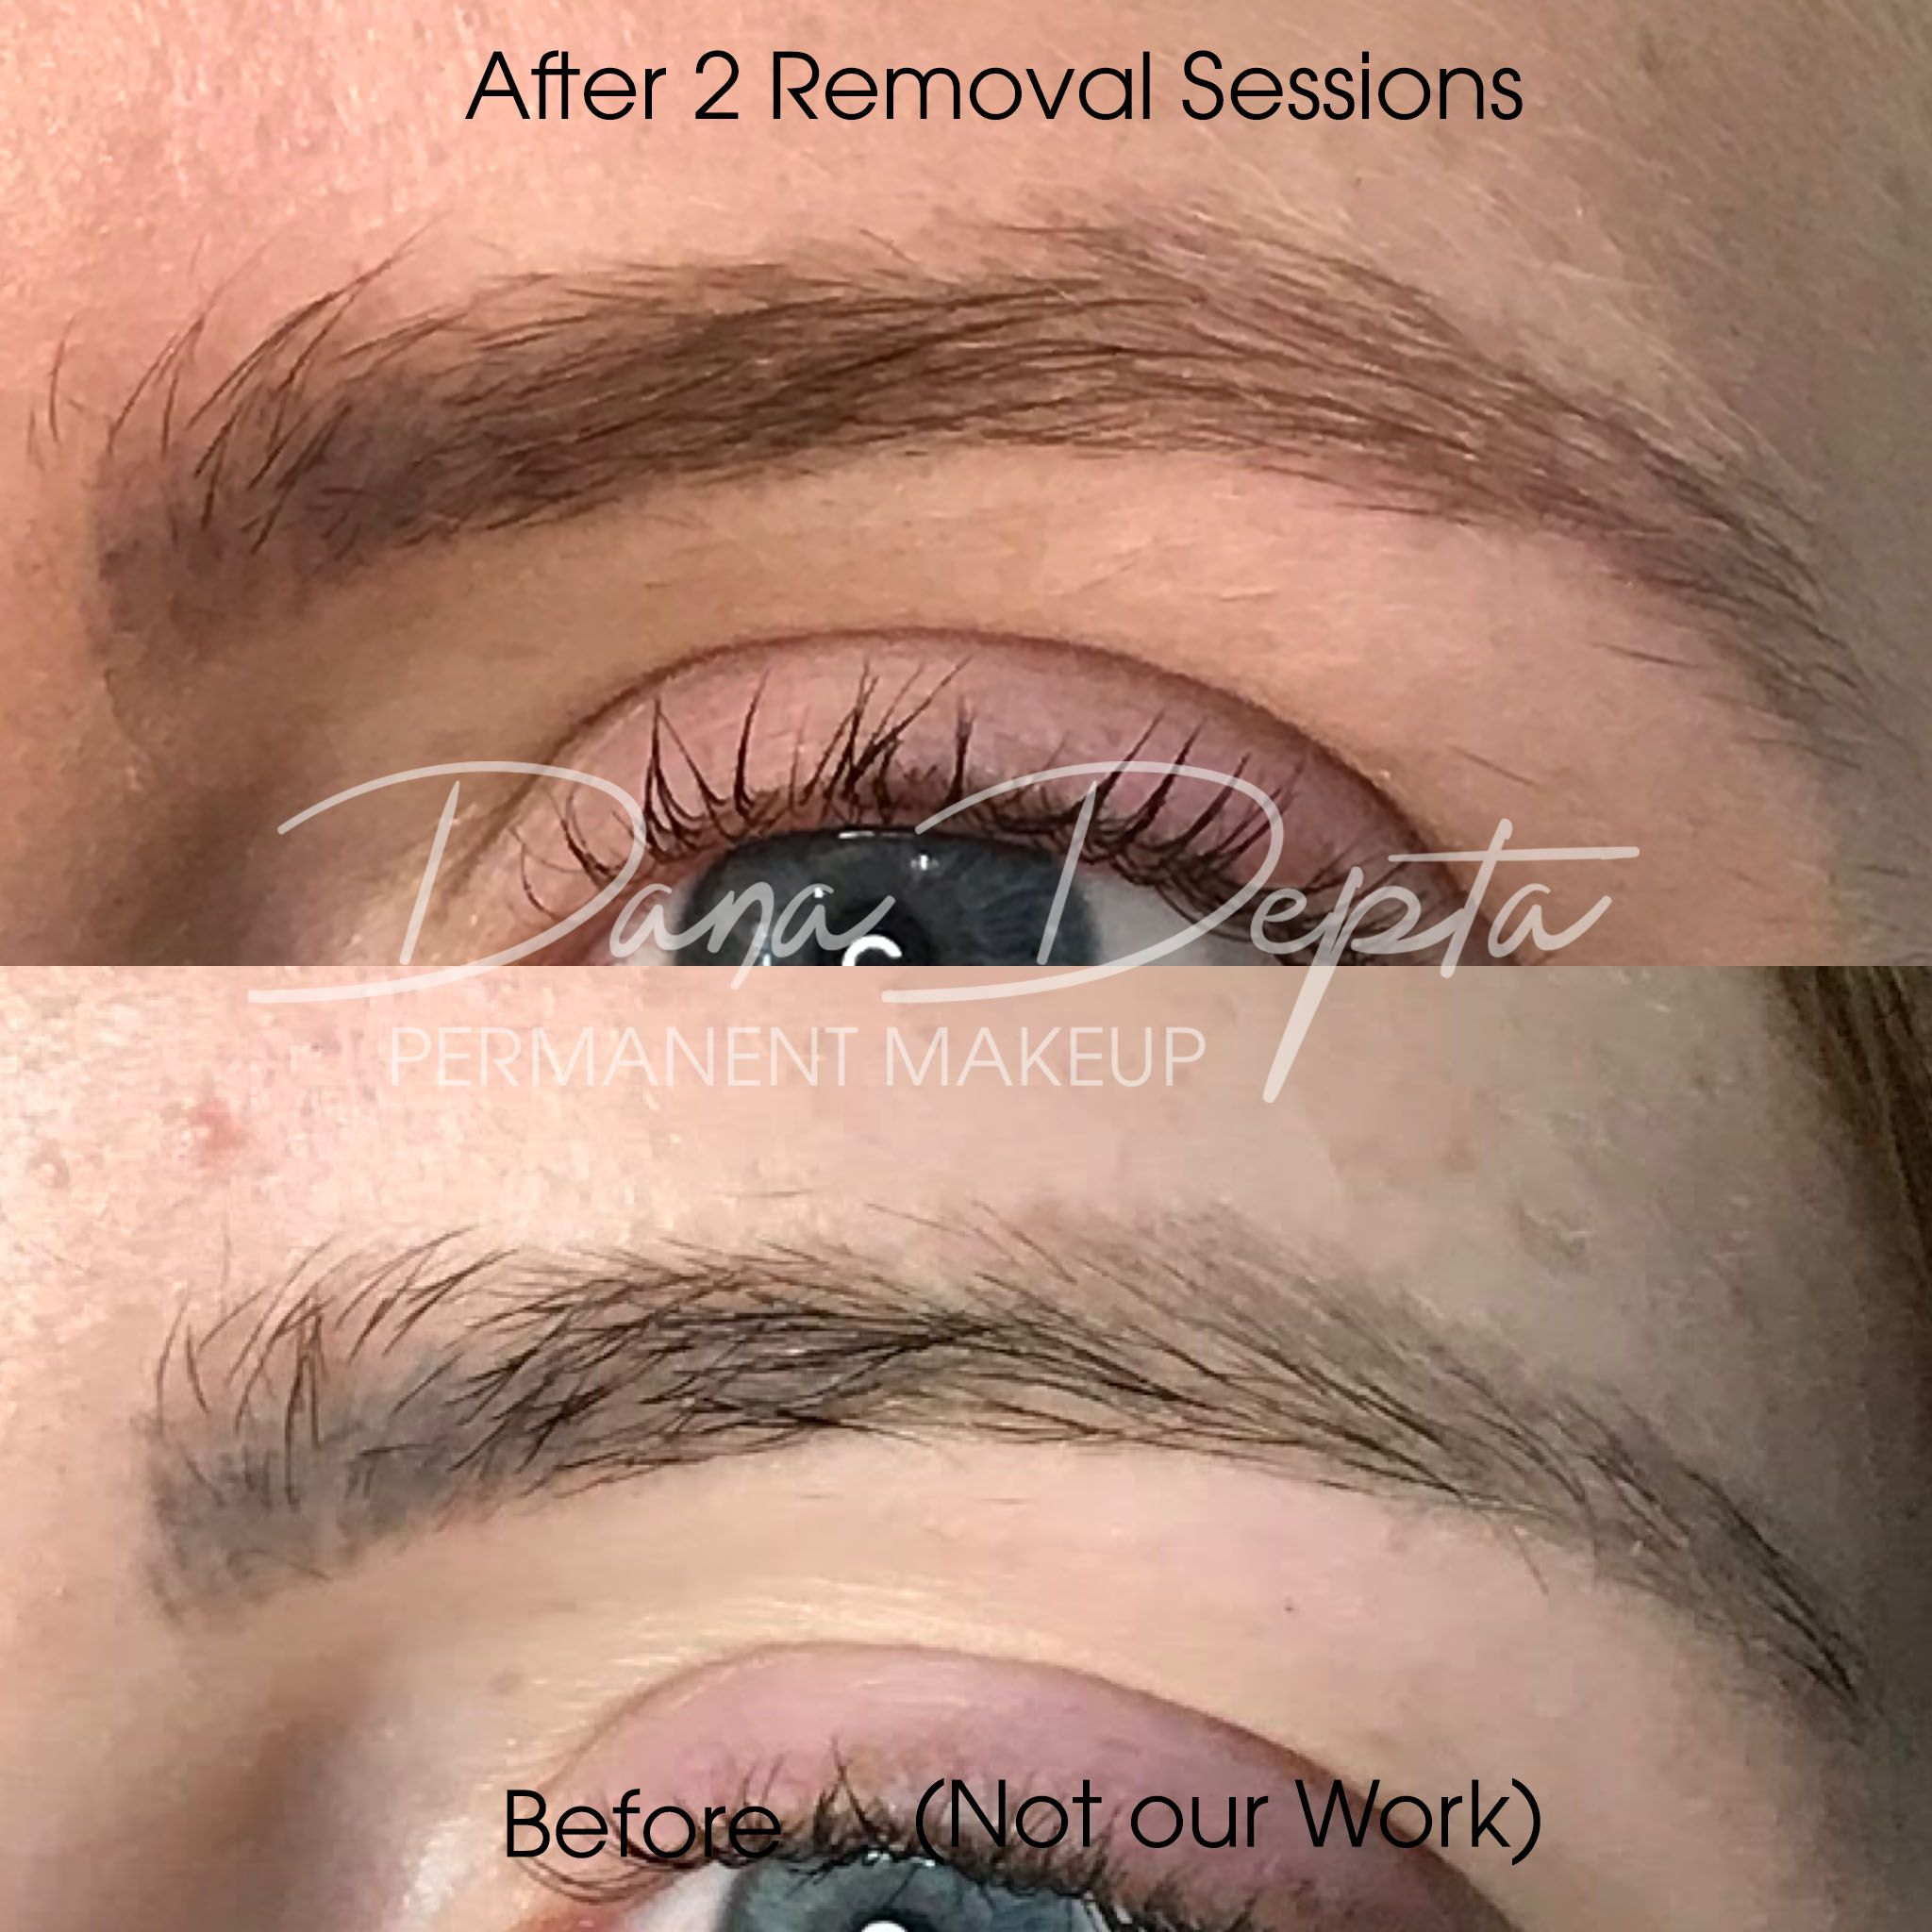 Saline Removal is Perfect for Botched Eyebrows Permanent